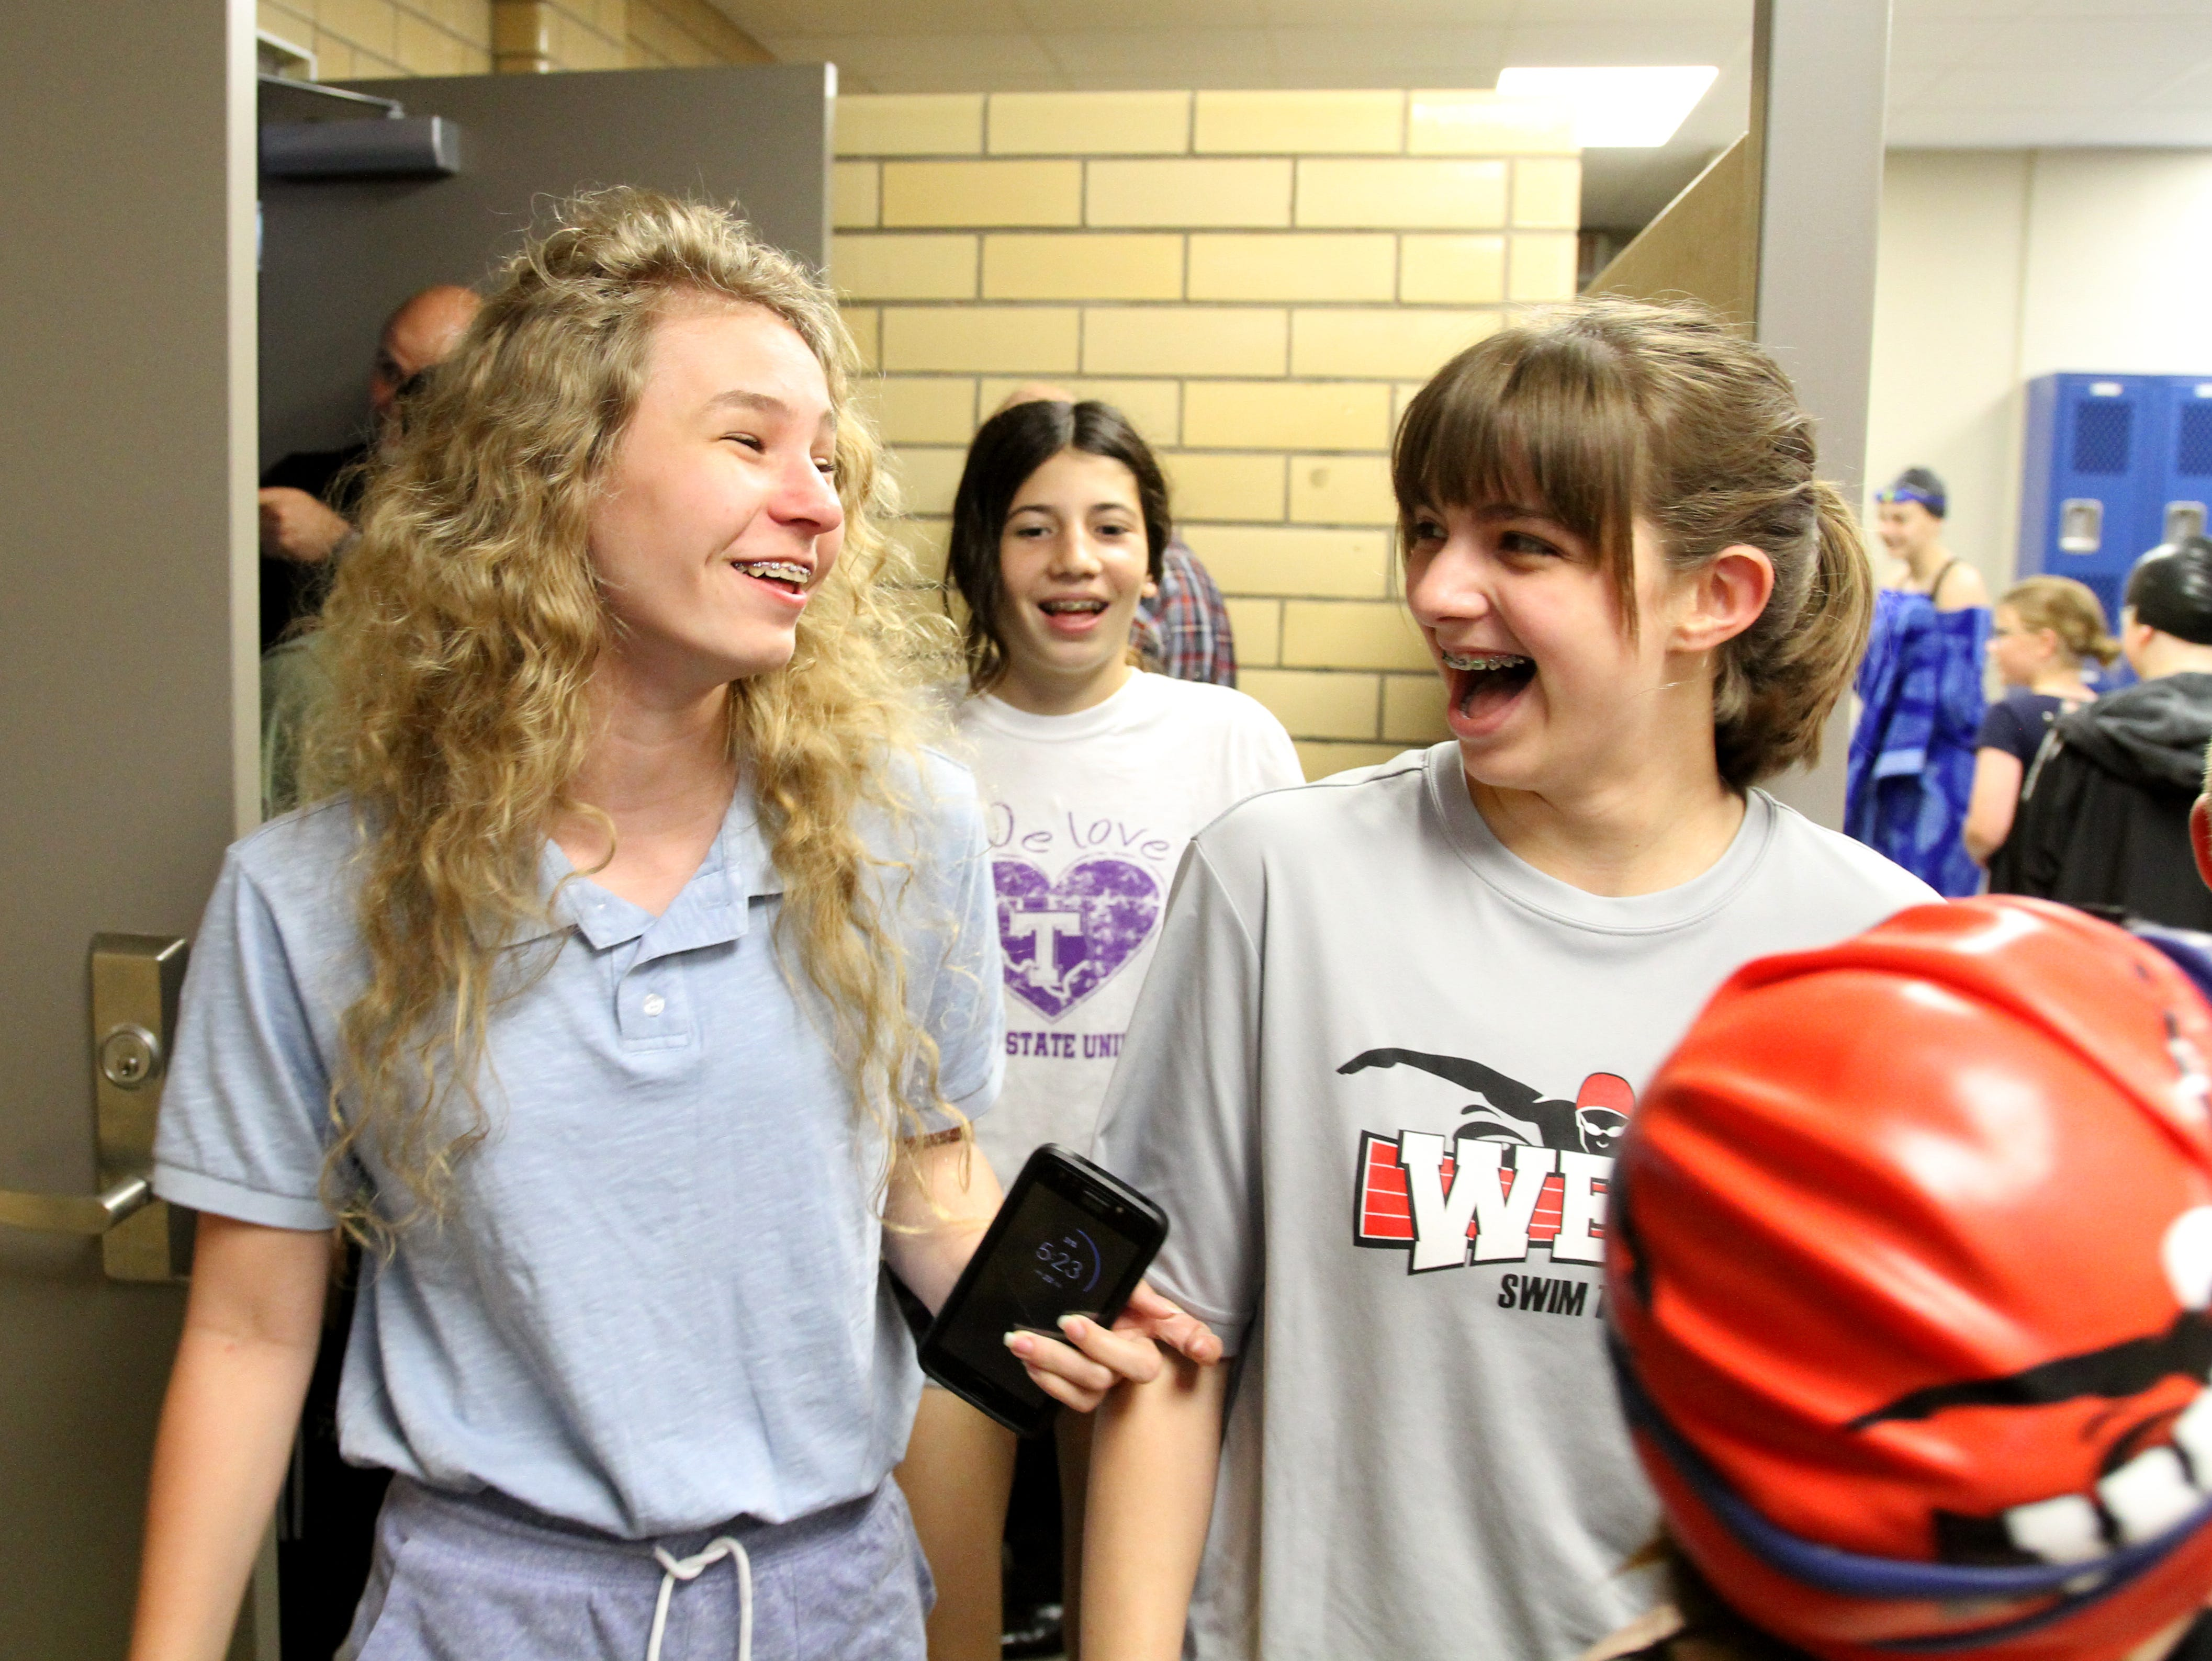 Swimmers and parents take their first look at the renovated locker rooms Tuesday, April 23, 2019, at The Boys & Girls Clubs of Wichita Falls Central Club's locker rooms grand opening.